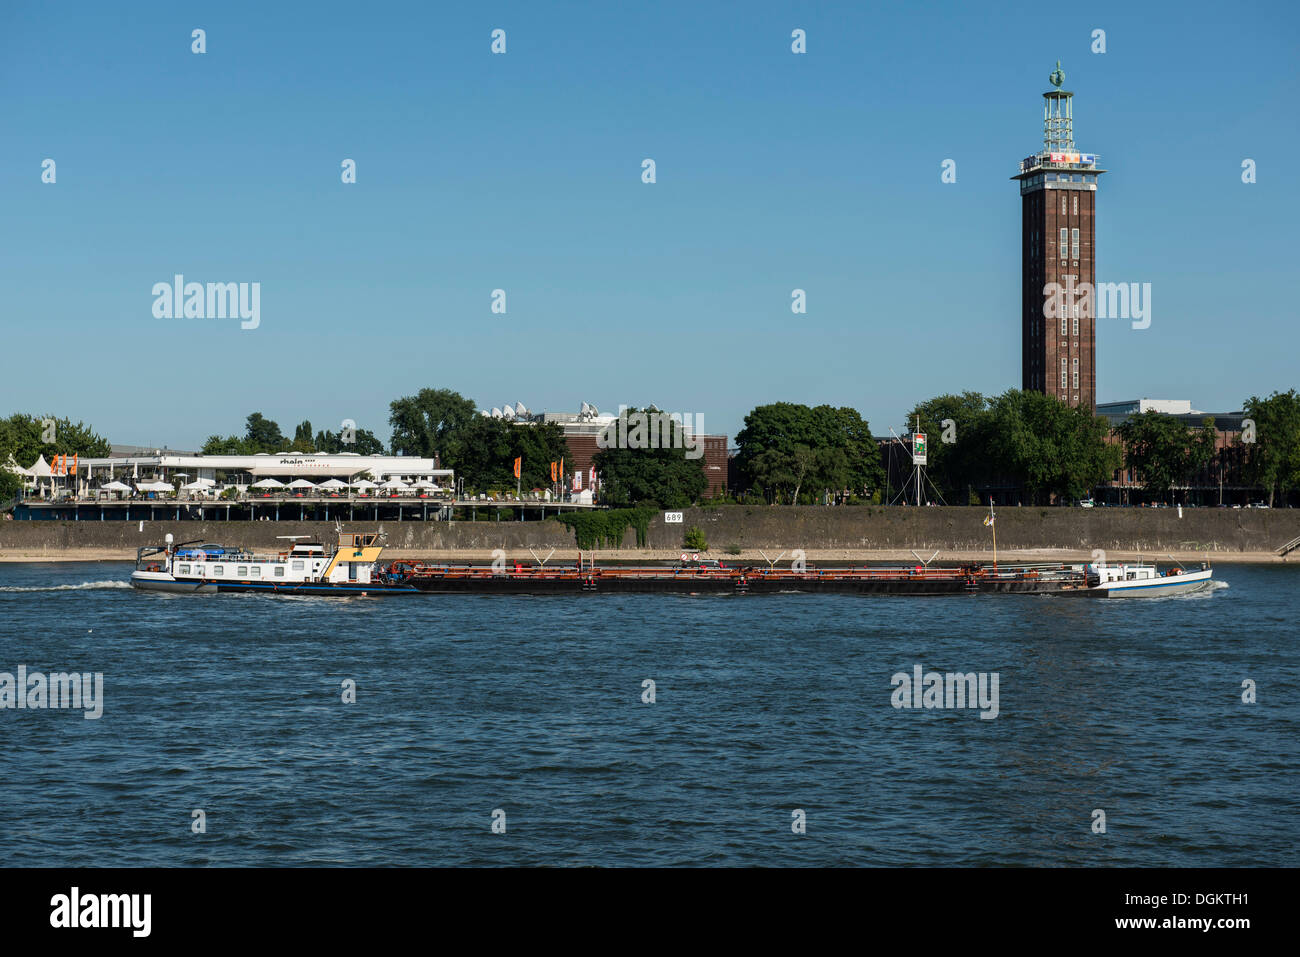 Benny, an inland vessel traveling up the Rhine river, Tanzbrunnen venue and the historic Messeturm tower at the back, Cologne - Stock Image